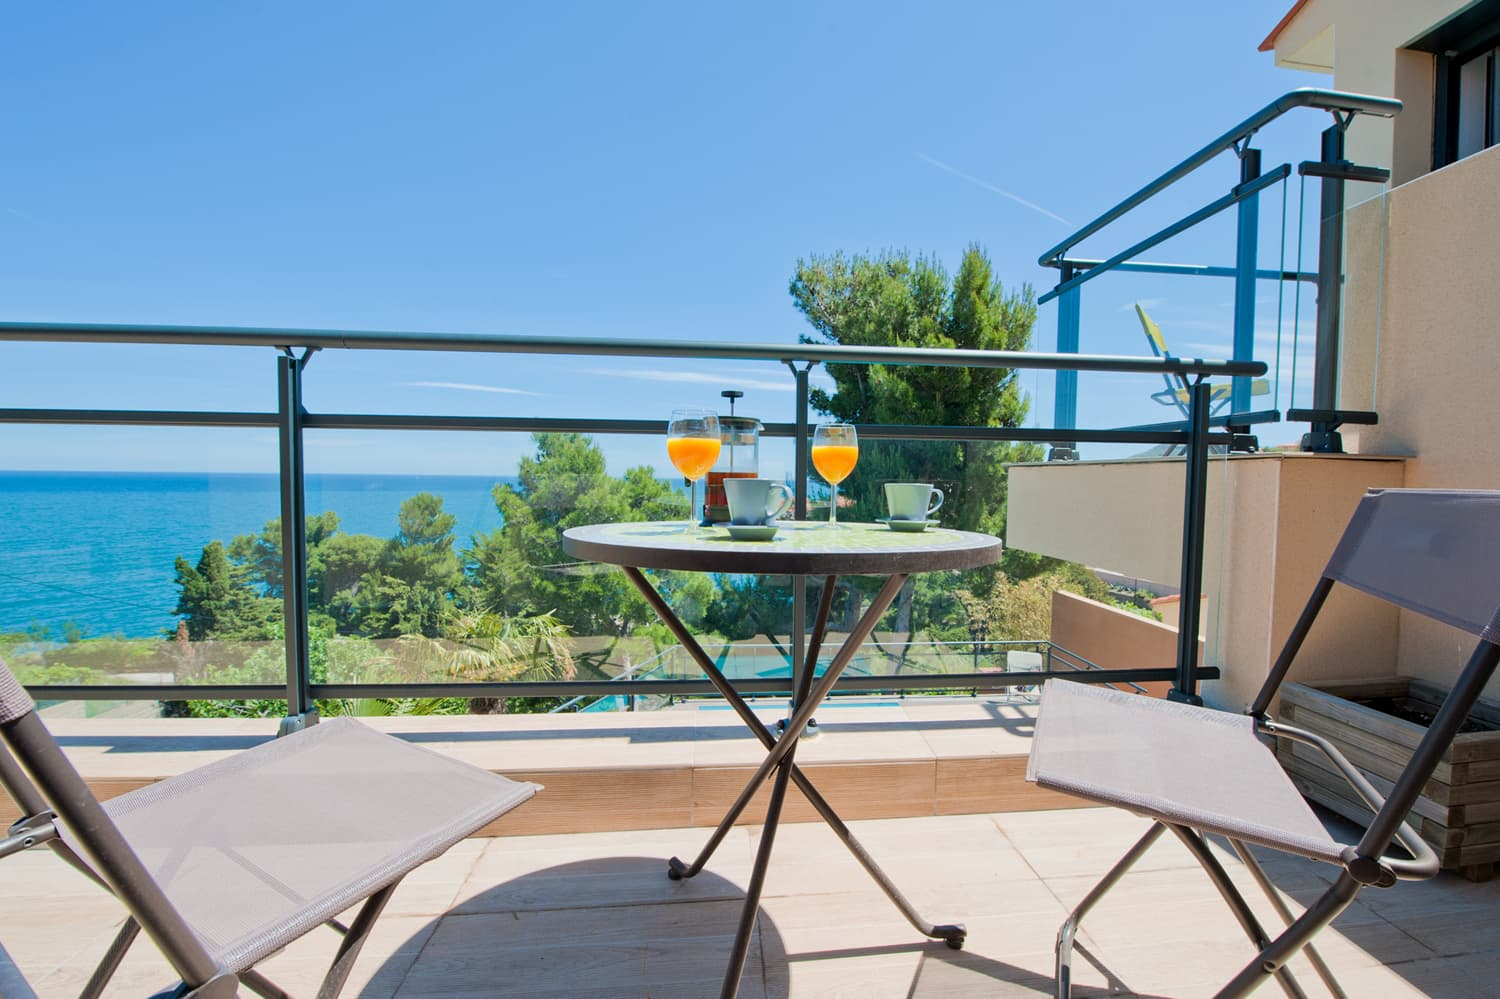 Villa terrace with Mediterranean Sea views in Collioure